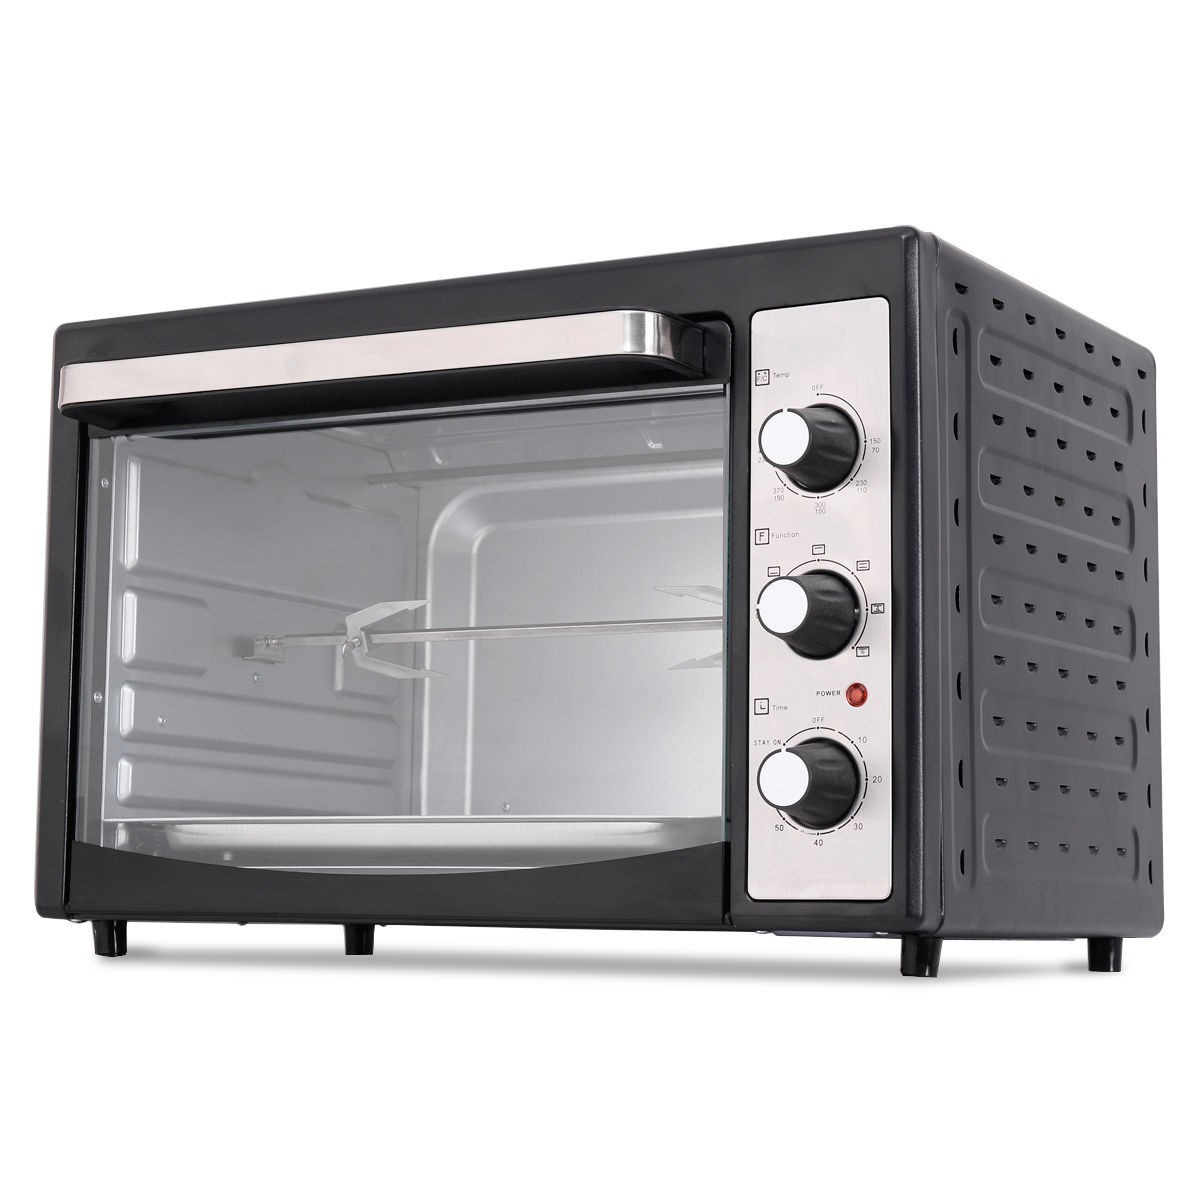 1800 W 40 L Electric Toaster Oven by